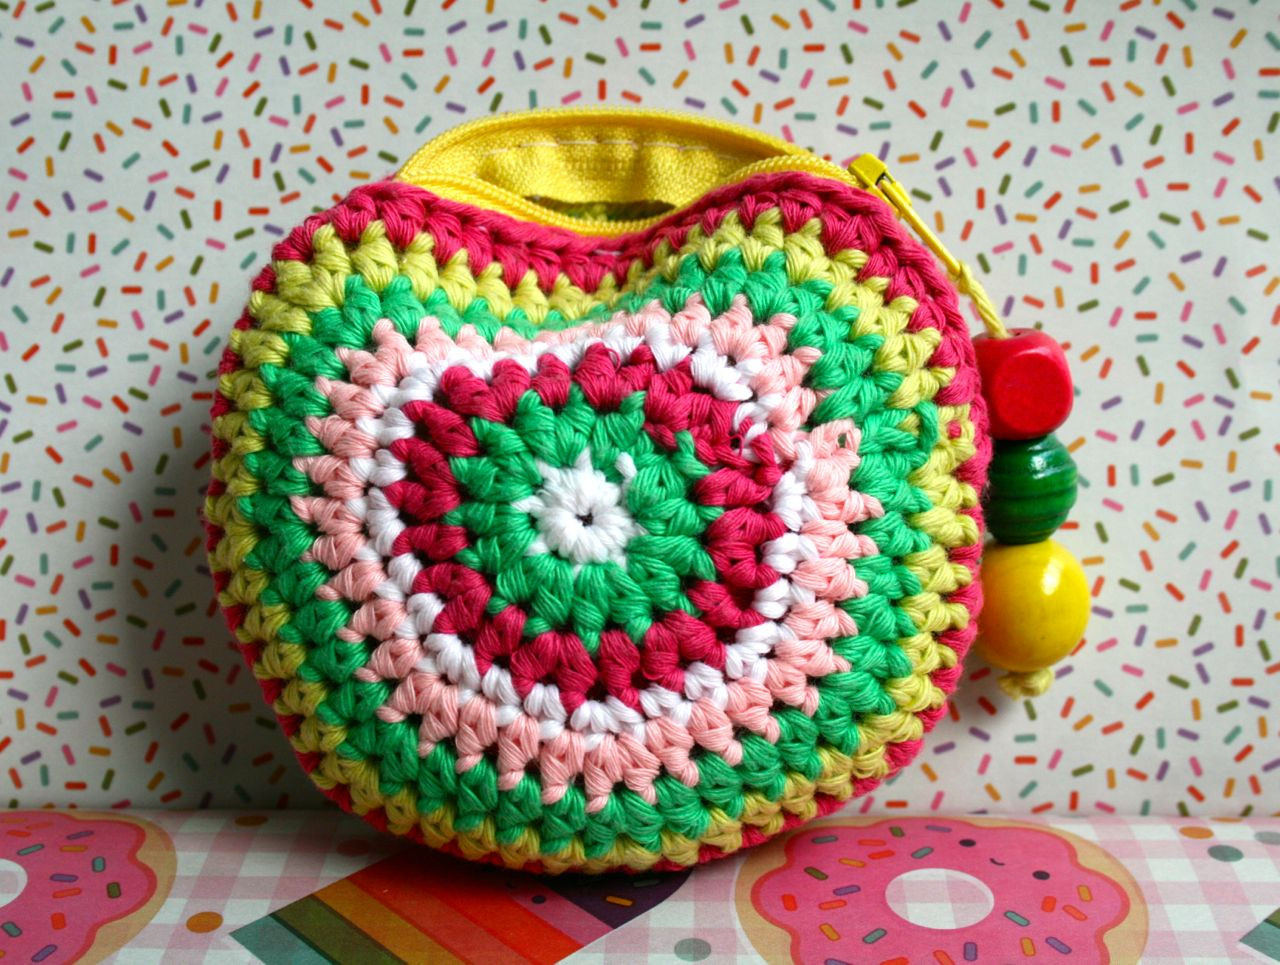 Free Crochet Bag Patterns Lovely Diy Free Pattern Little Crochet Coin Purse Photo Tutorial Of Awesome 45 Ideas Free Crochet Bag Patterns